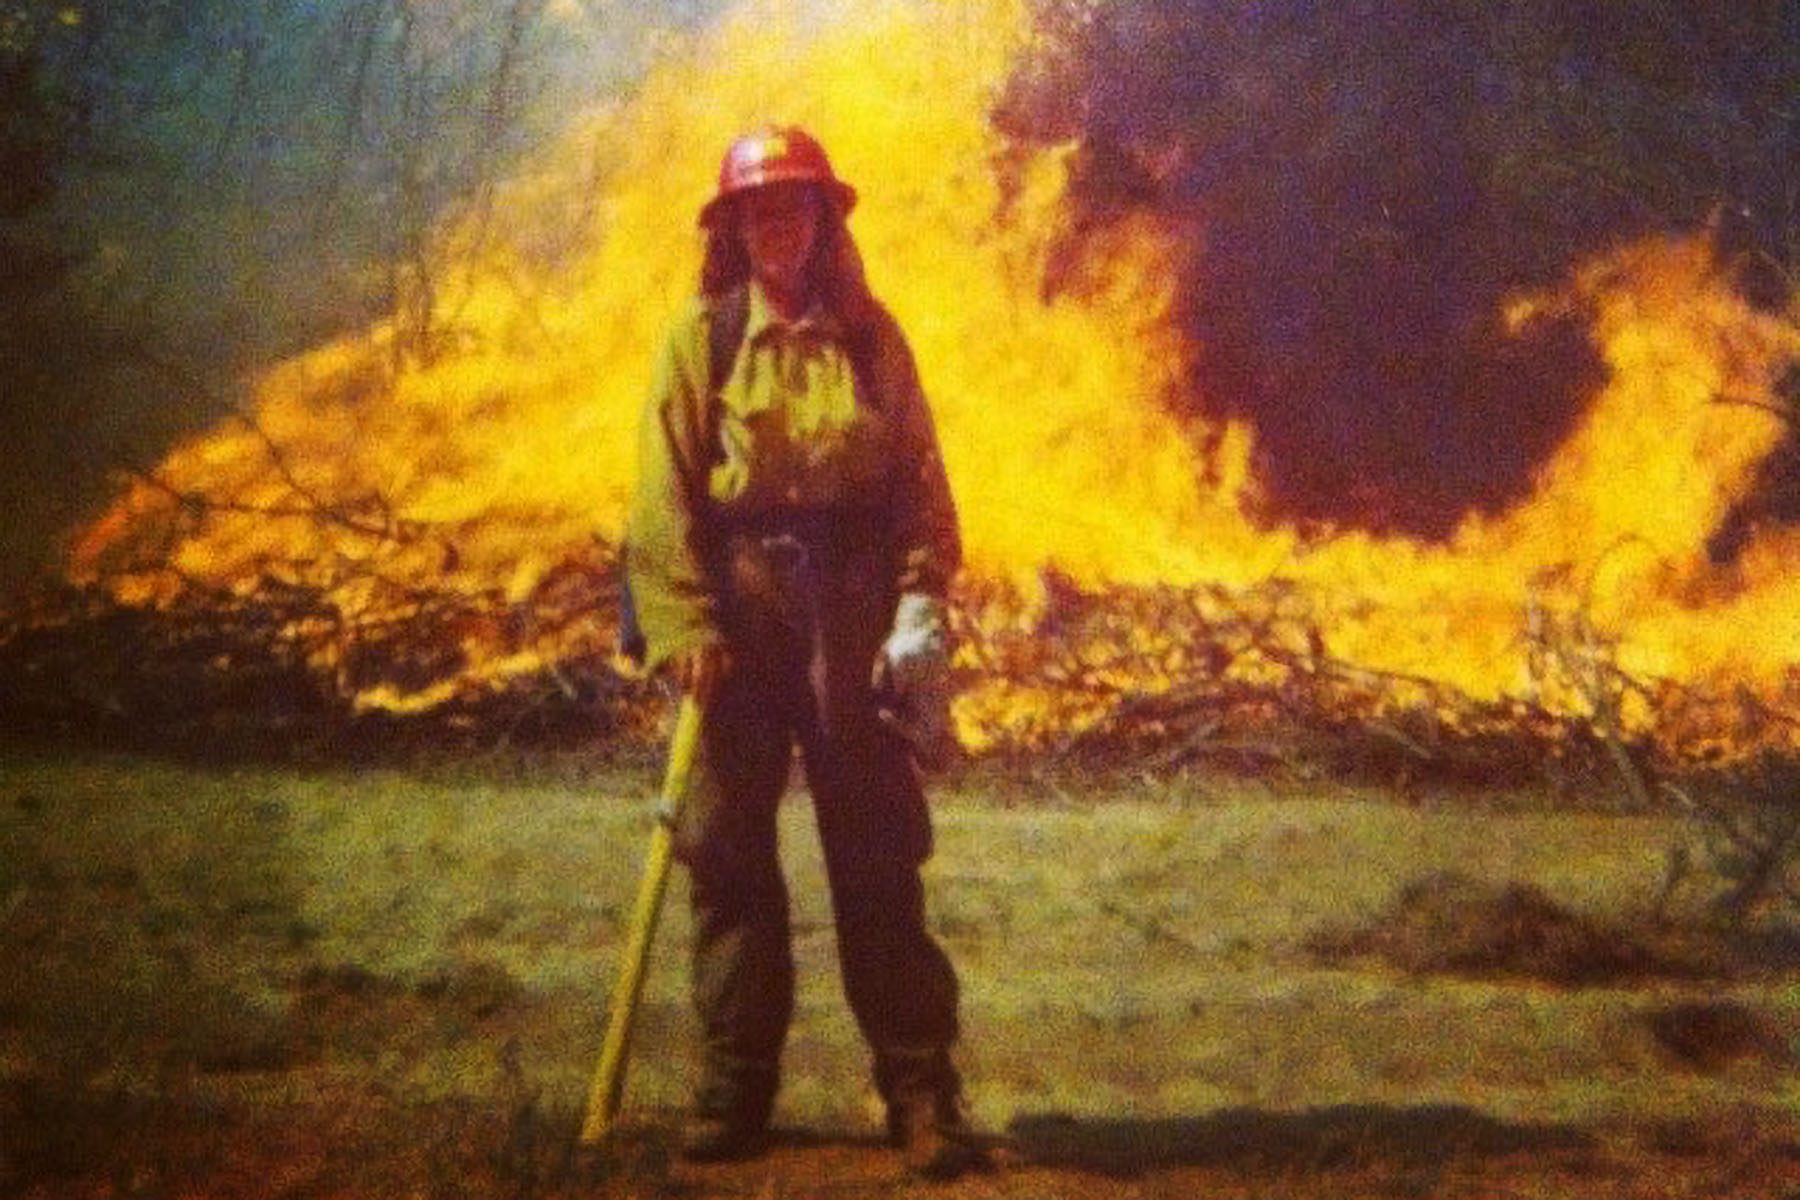 Stacy Selby poses for a photo in front of a fire.